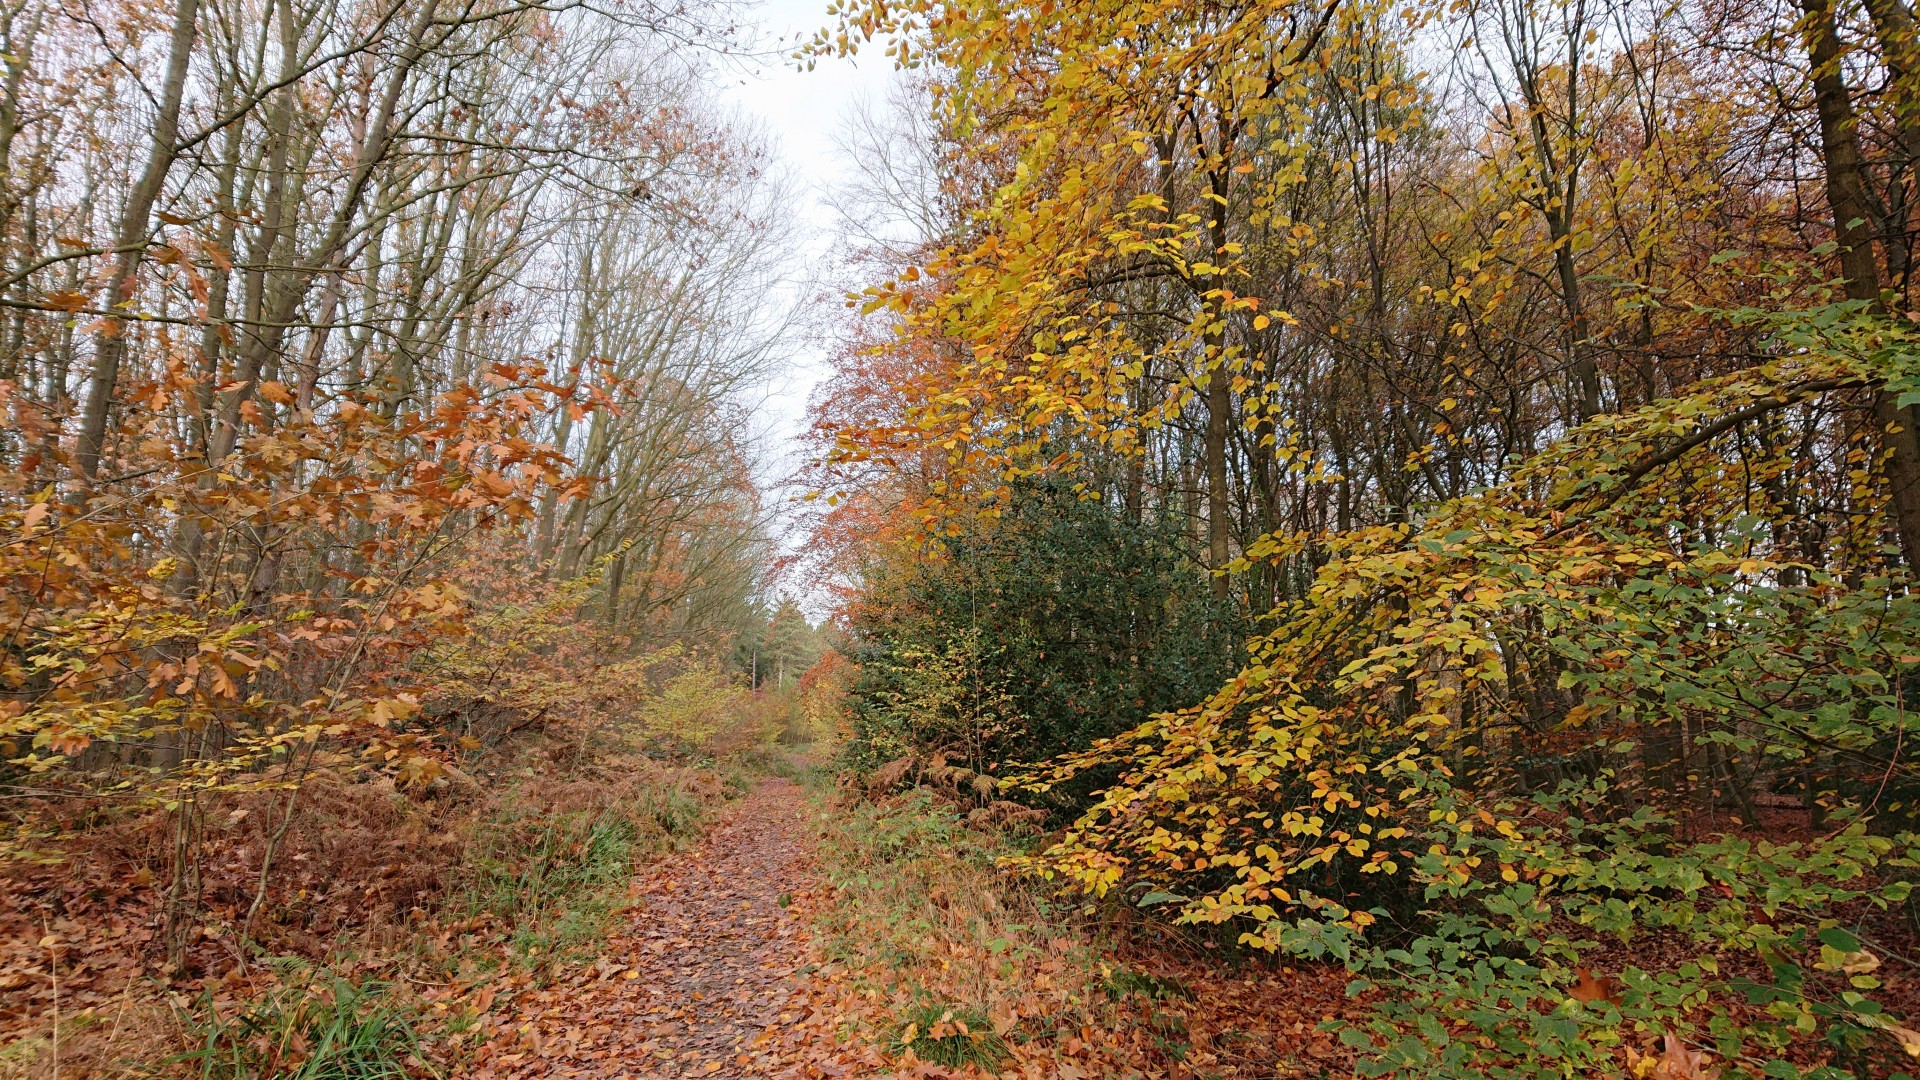 leafy track in autumn